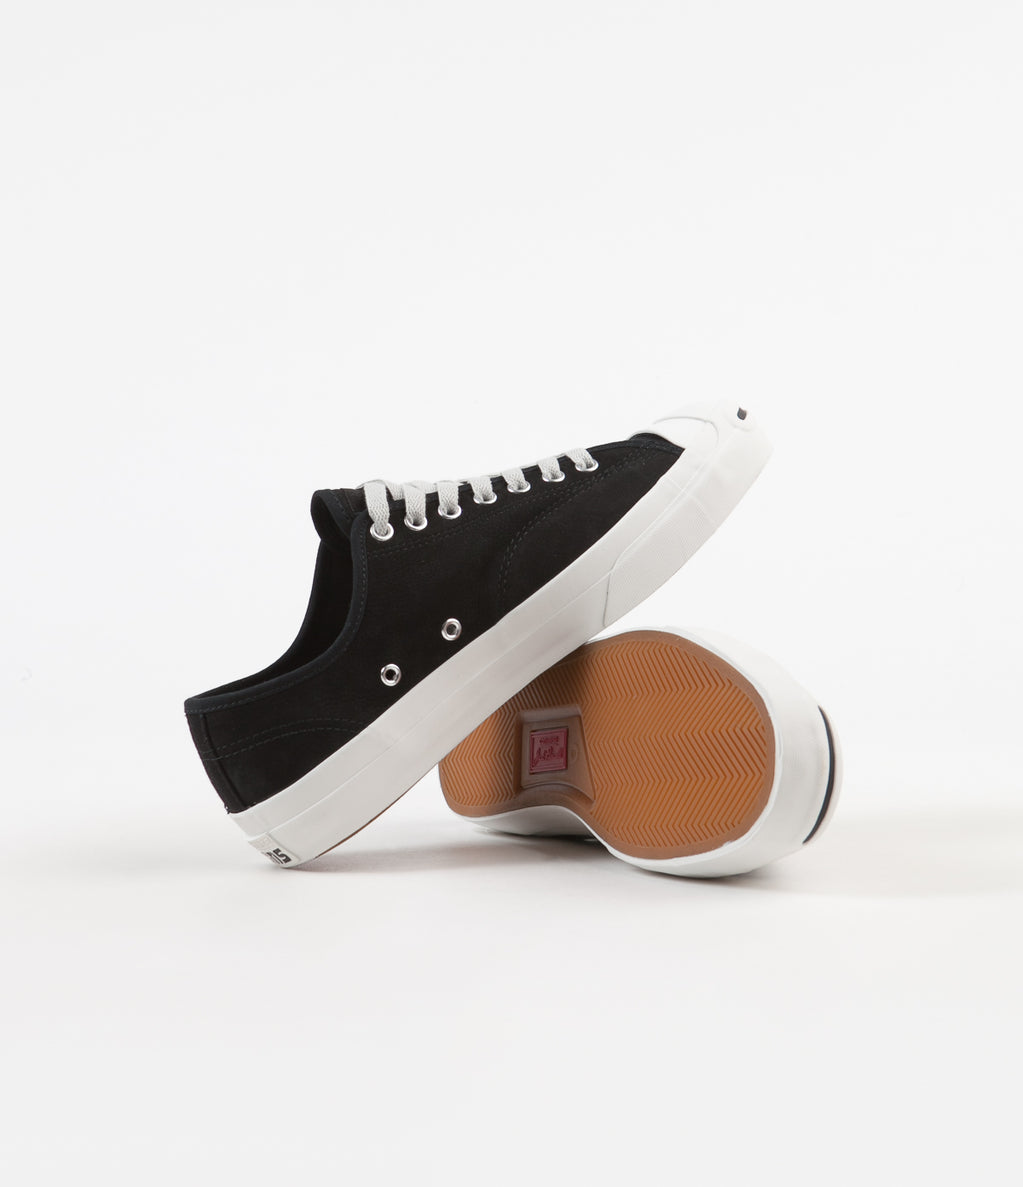 Converse CONS Jack Purcell Pro Ox Black-Out Receiving the